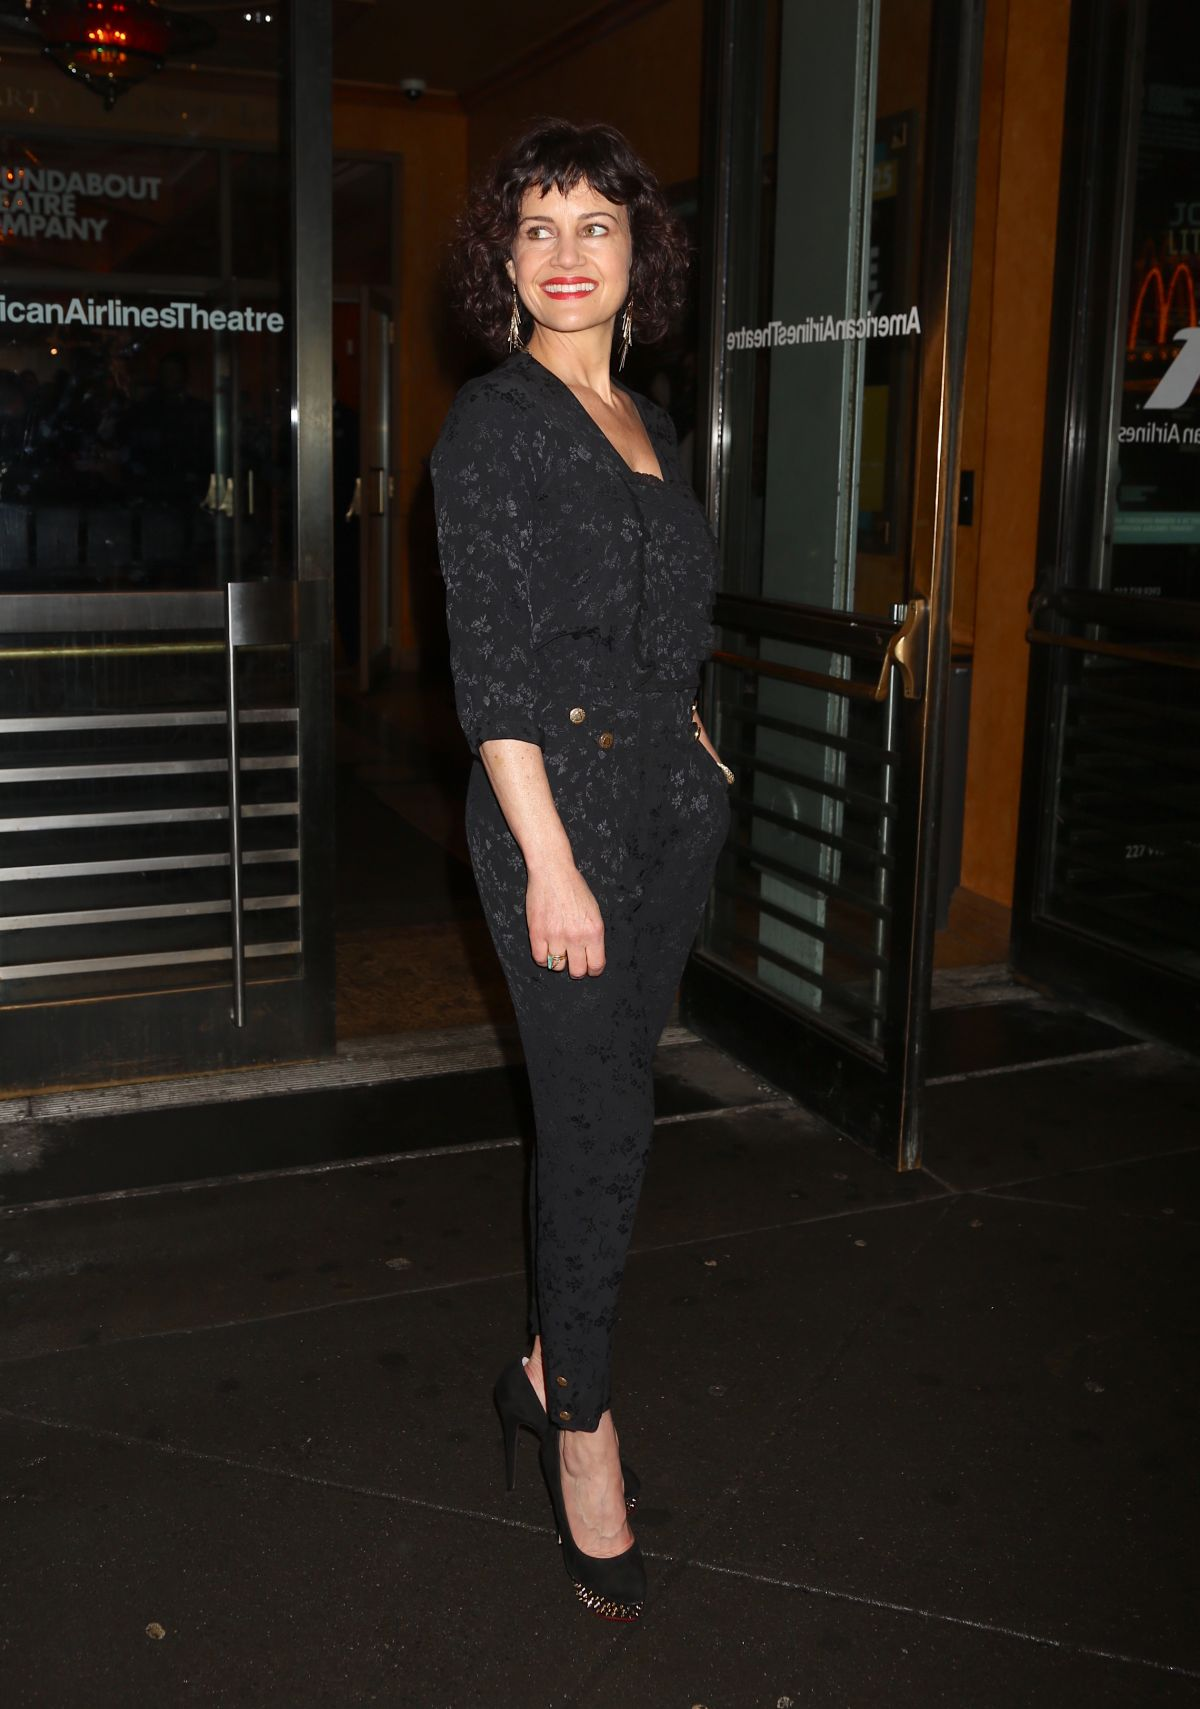 Carla Gugino At Opening Night Arrivals for John Lithgow Stories By Heart, on Broadway at the American Airlines Theatre - New York